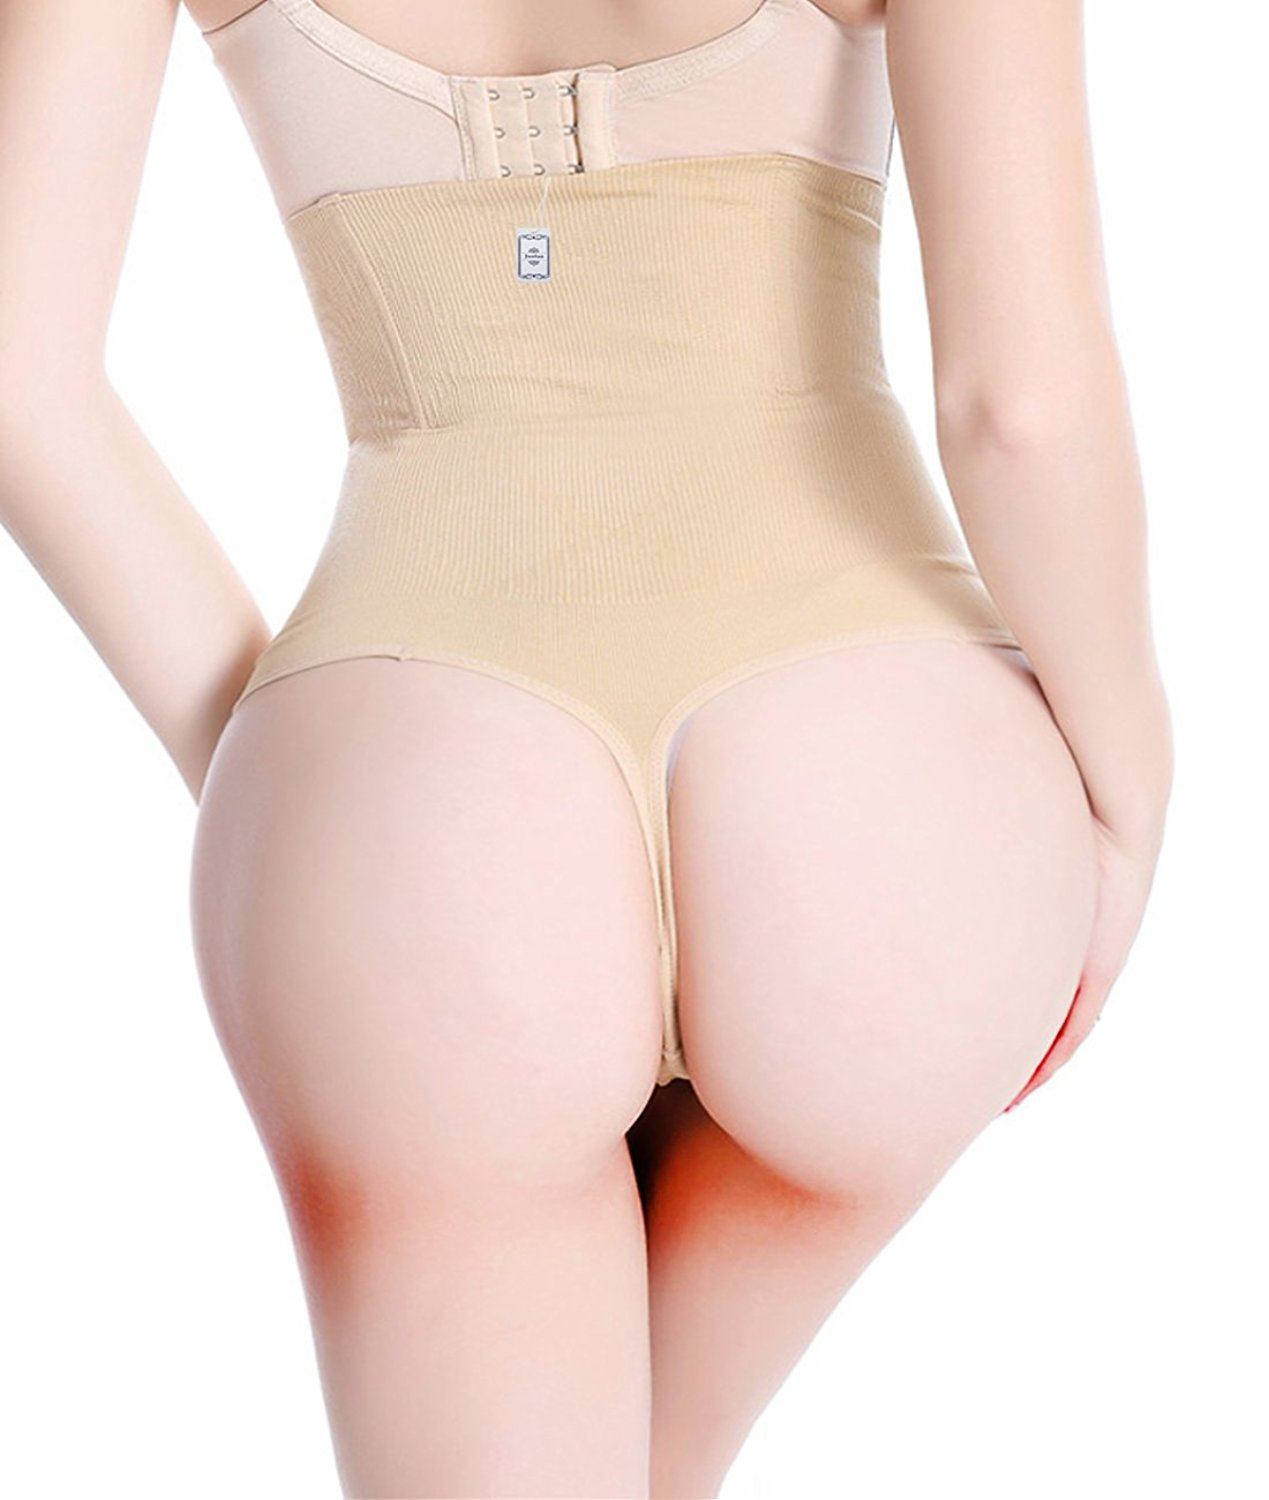 2b5c03c246cded Get Quotations · Women Waist Cincher Girdle Tummy Slimmer Sexy Thong Panty  Shapewear Thong Panty